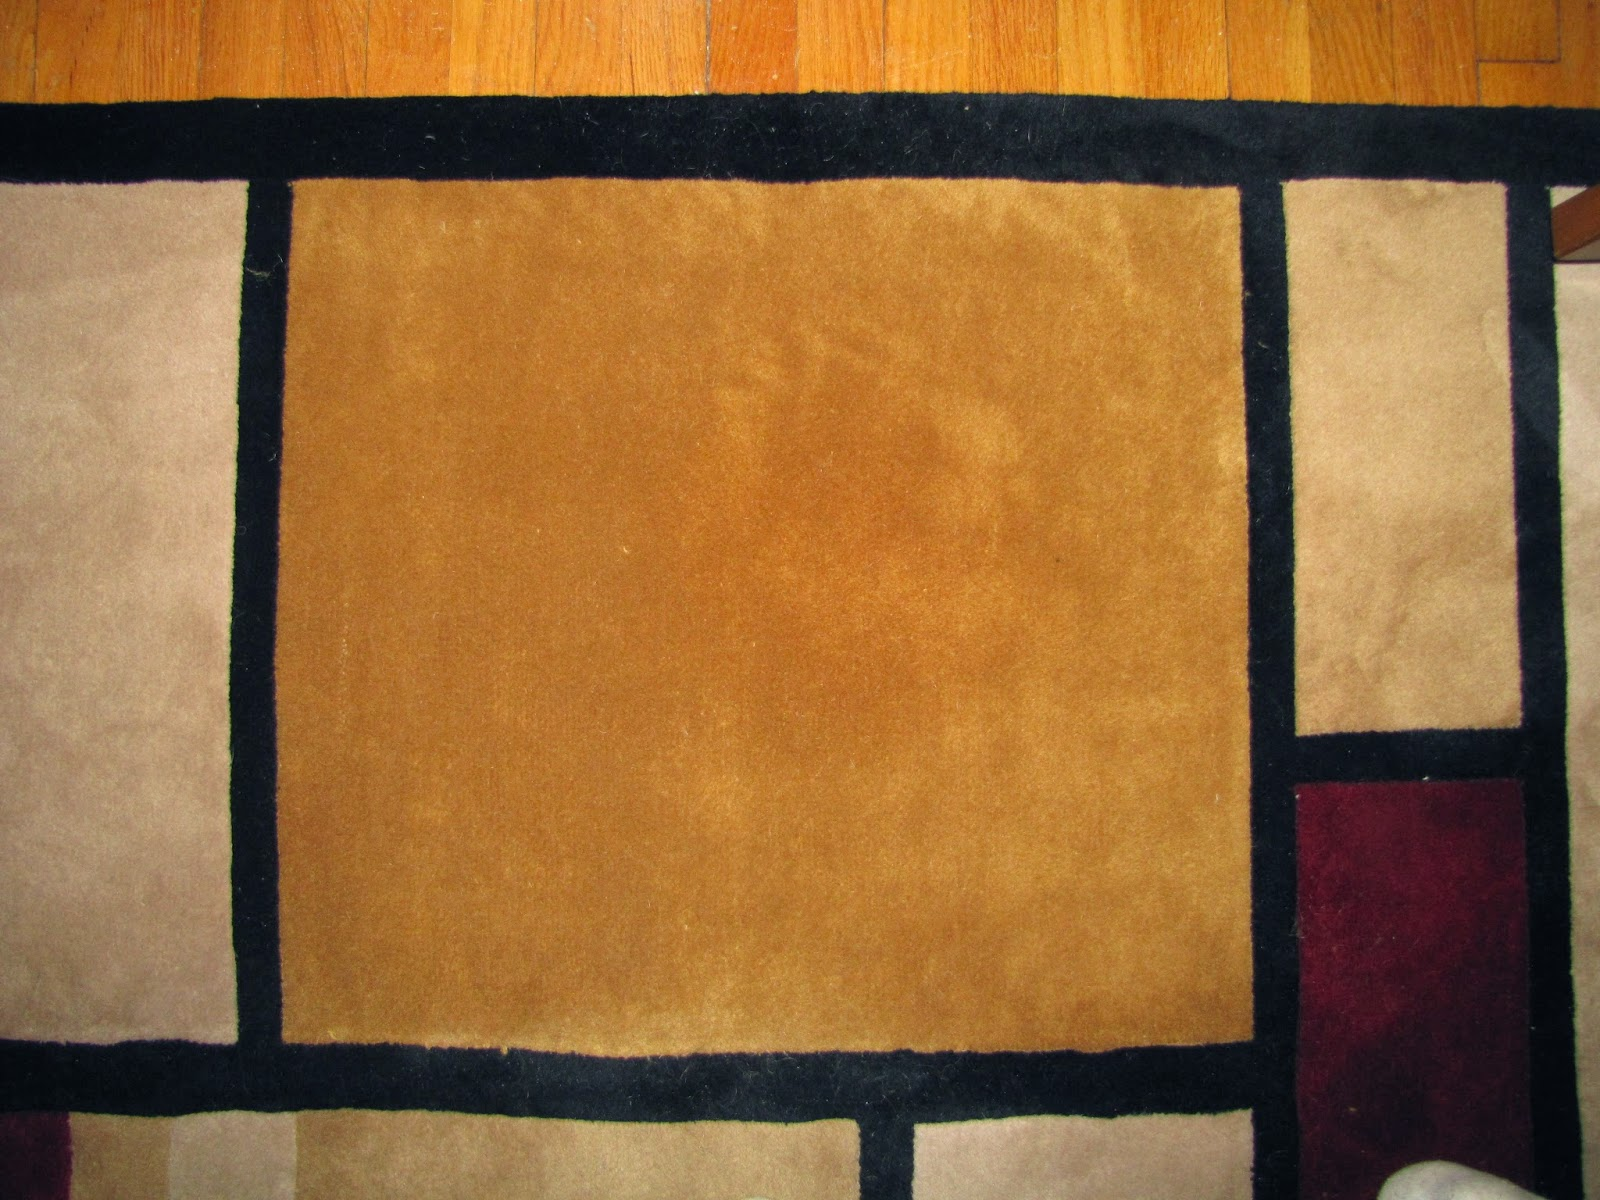 After the carpet has dried, you will be able to see the stain is gone. In fact you would never even have known it was there.